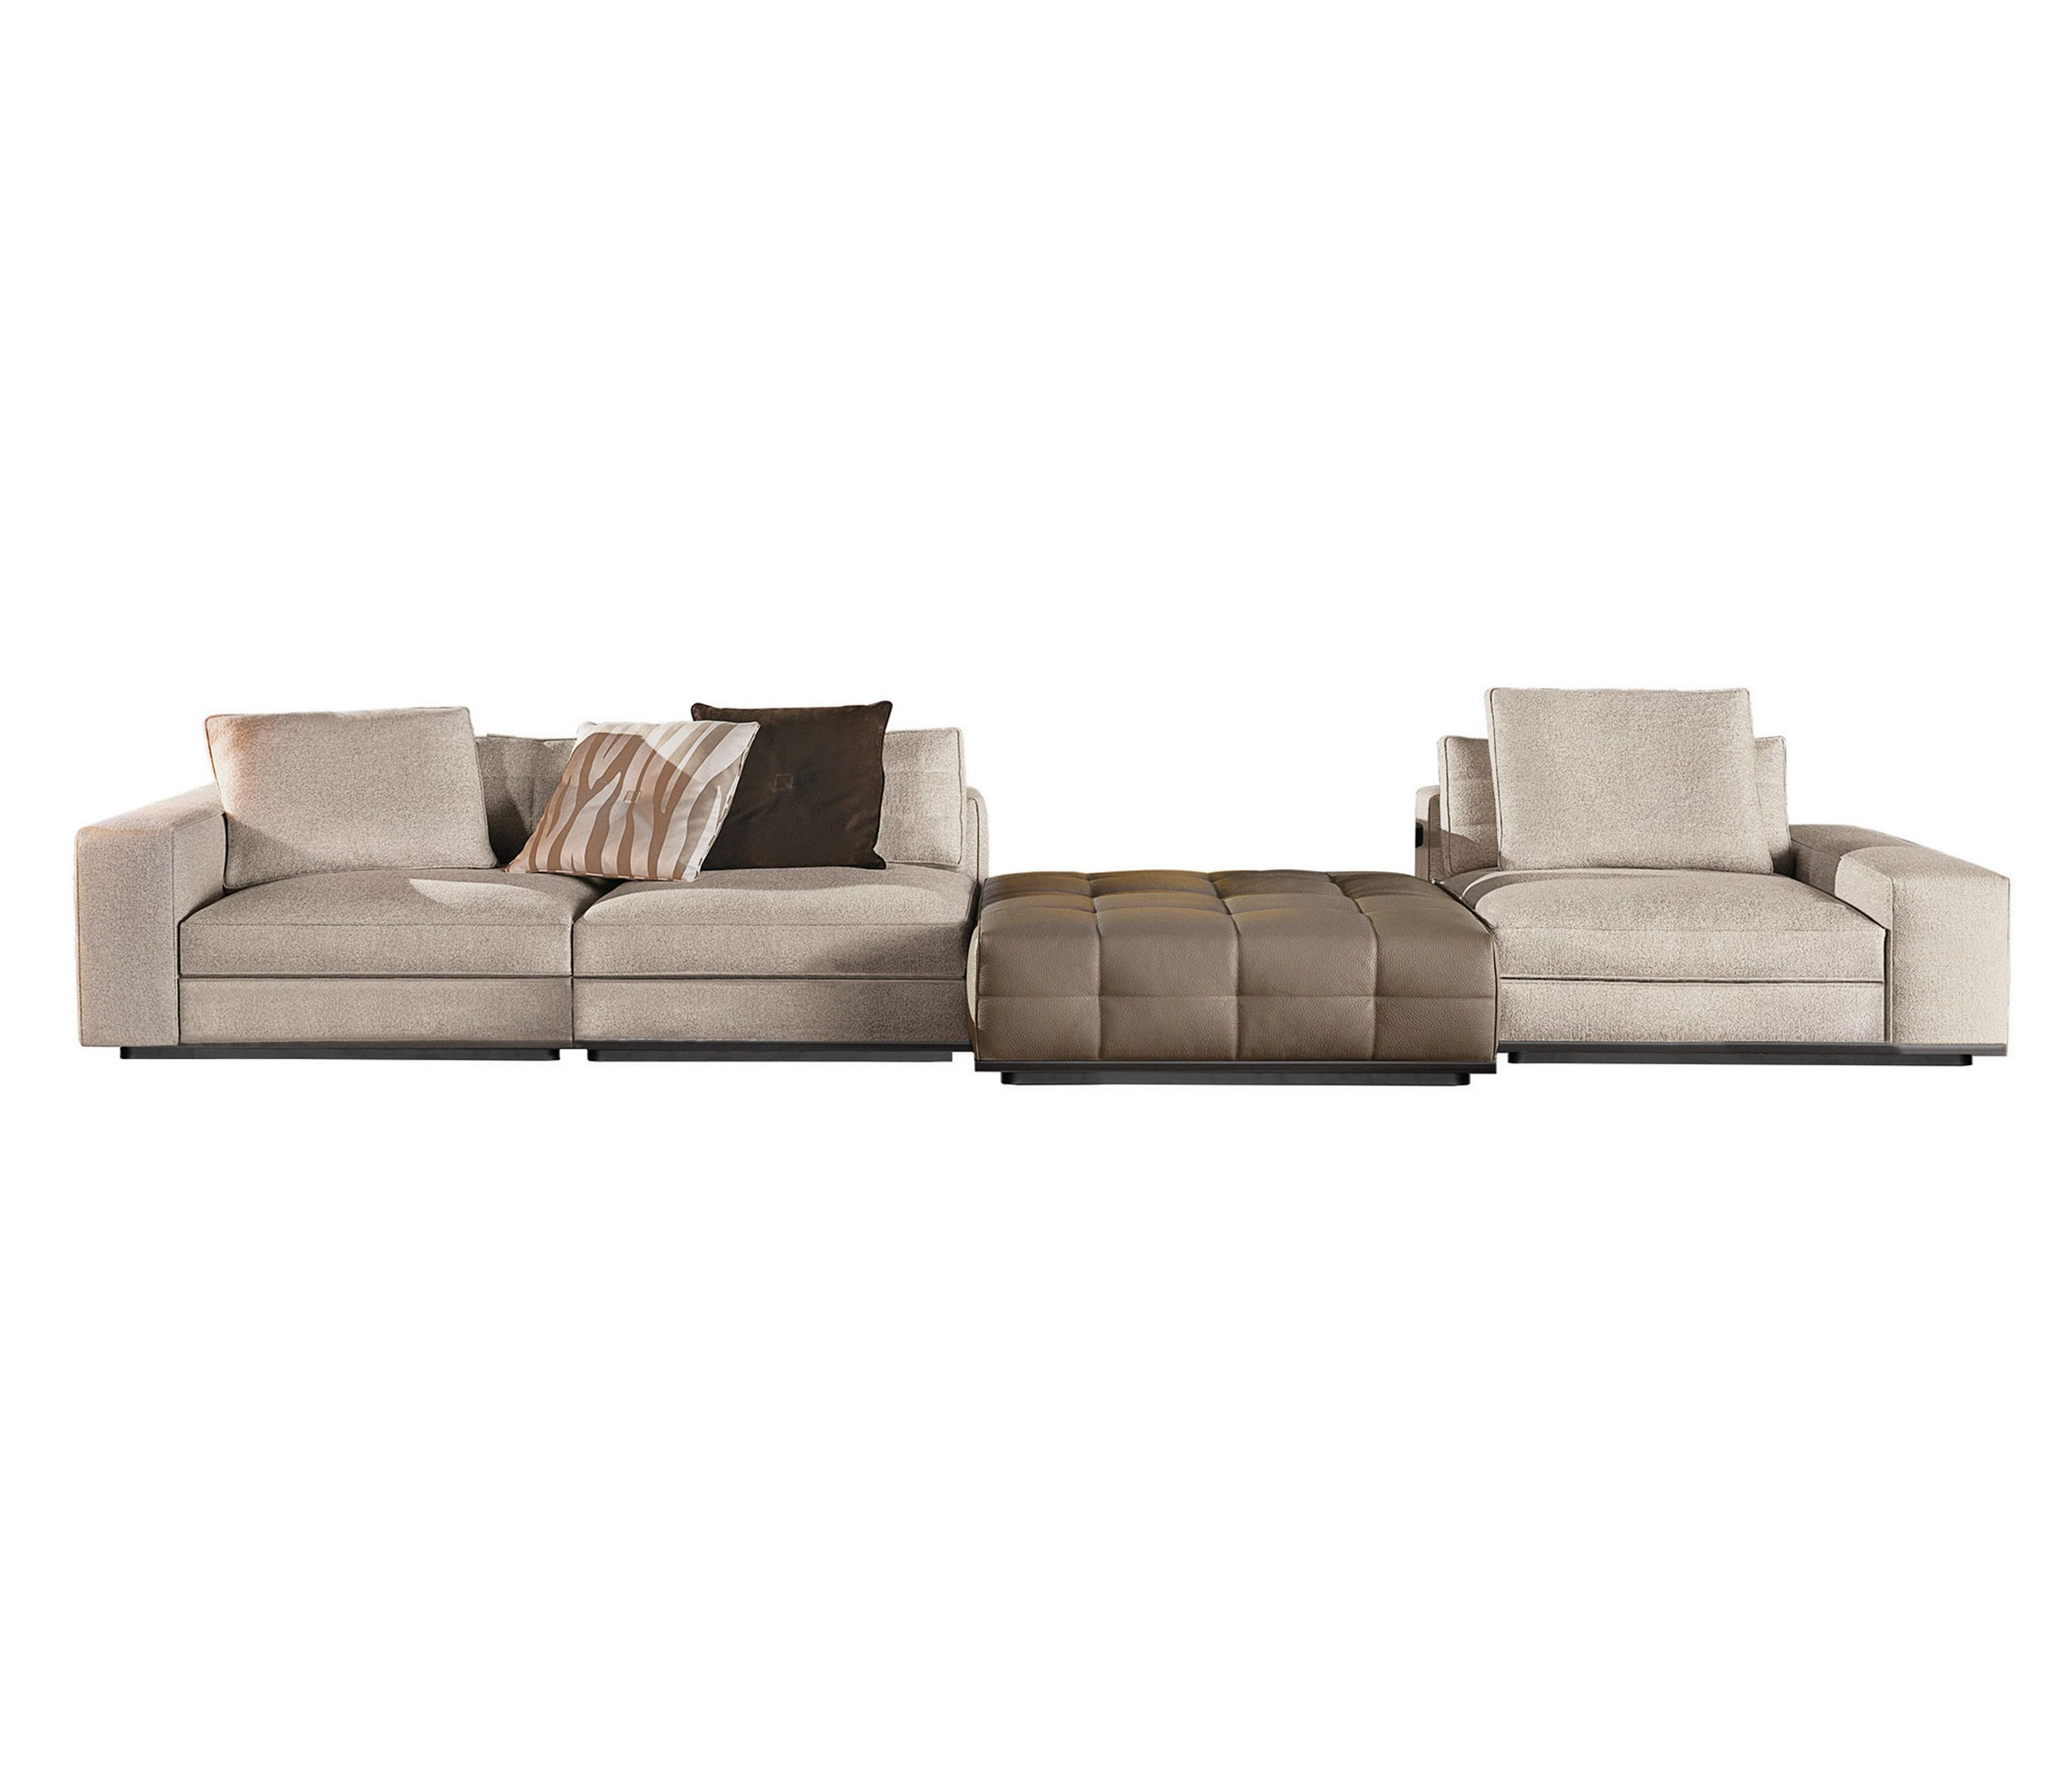 Lawrence Seating System By Minotti Modular Sofa Systems